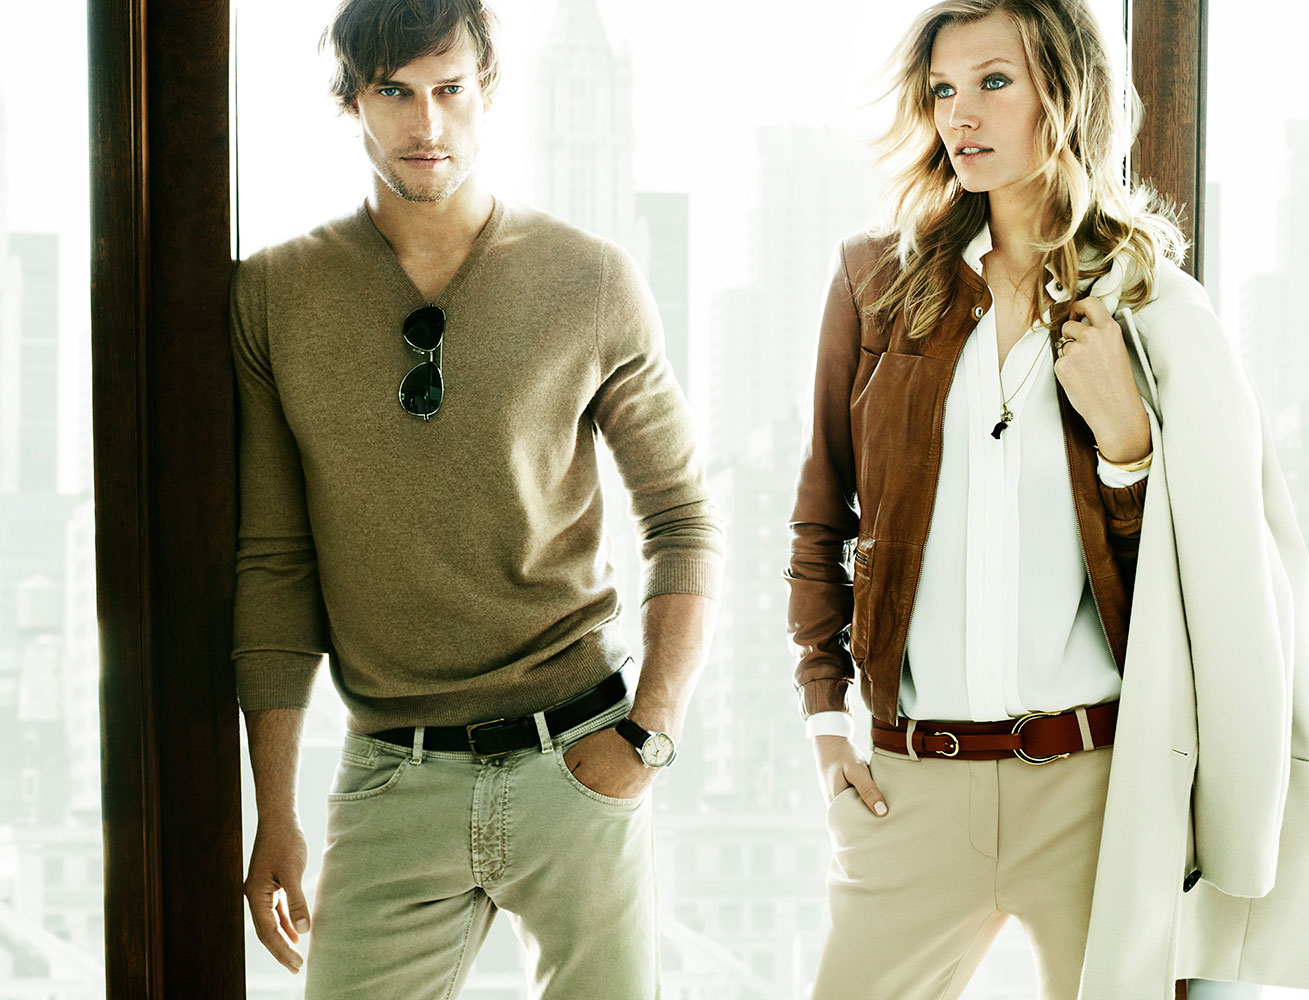 massimo dutti Massimo dutti was incorporated to the group in 1991 and it epitomises elegant  and universal style that connects with the independent,.